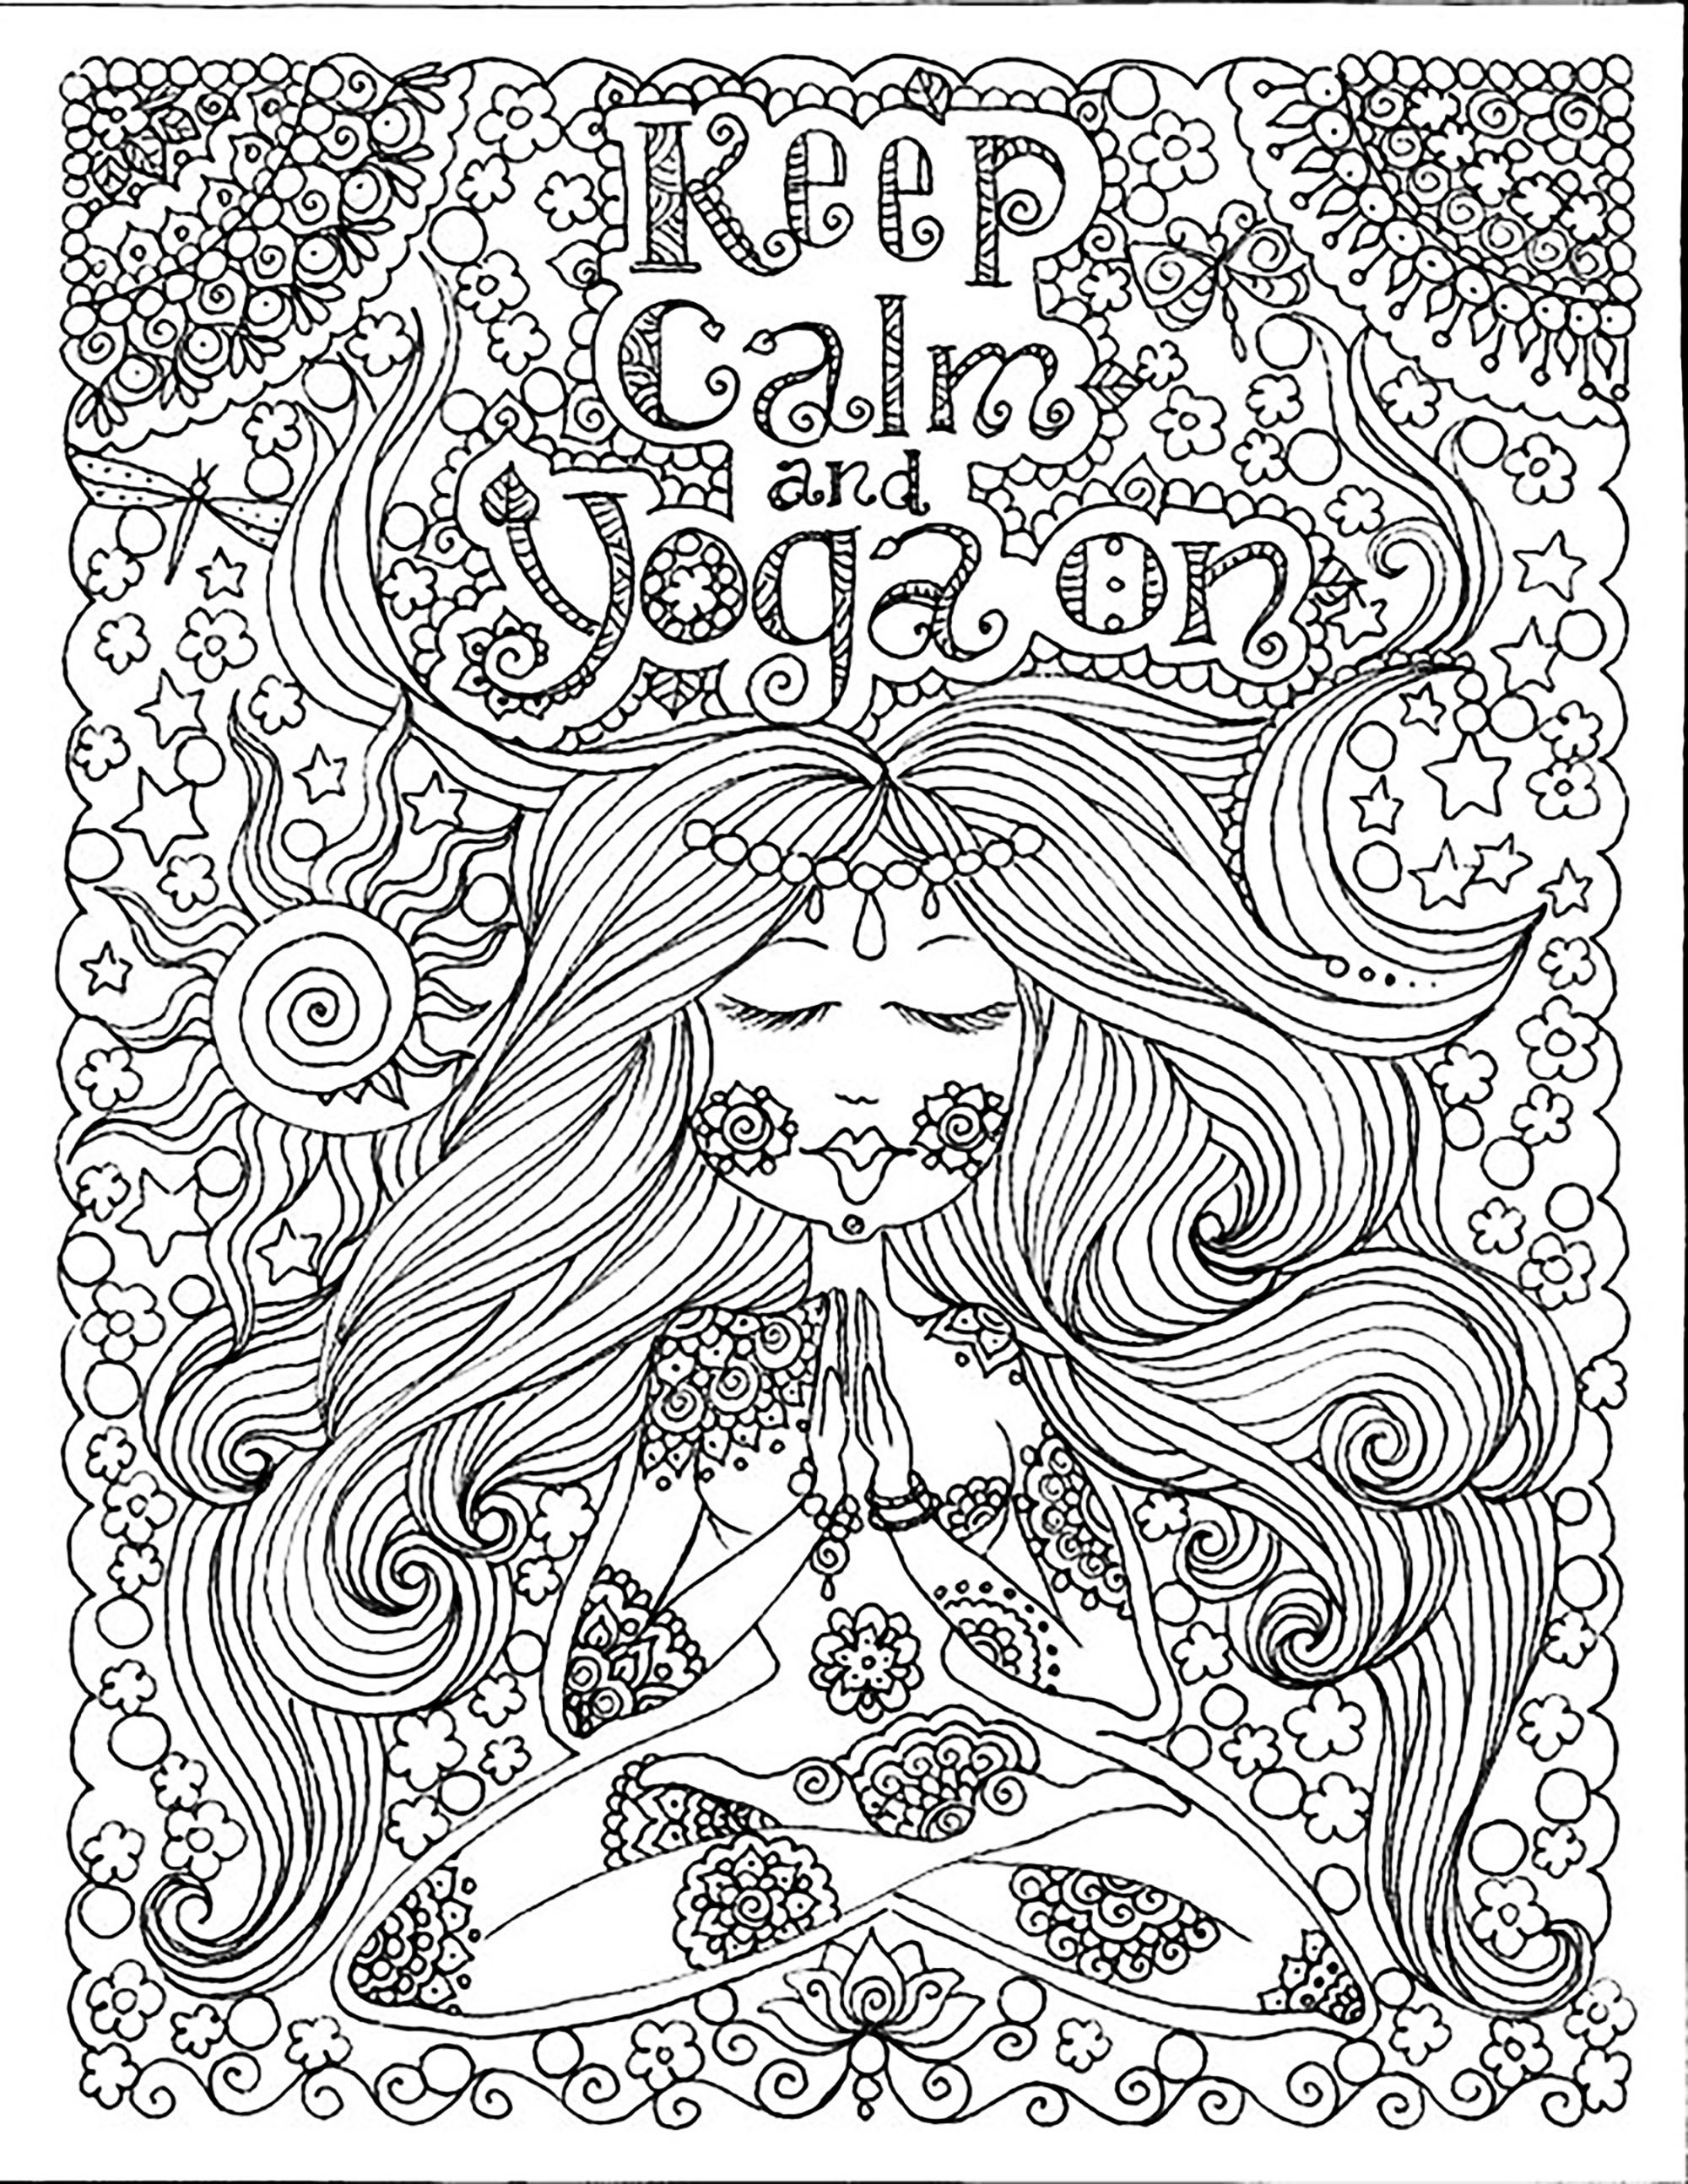 Keep calm and do Yoga | From the gallery : Zen & Anti Stress | Artist : Deborah Muller